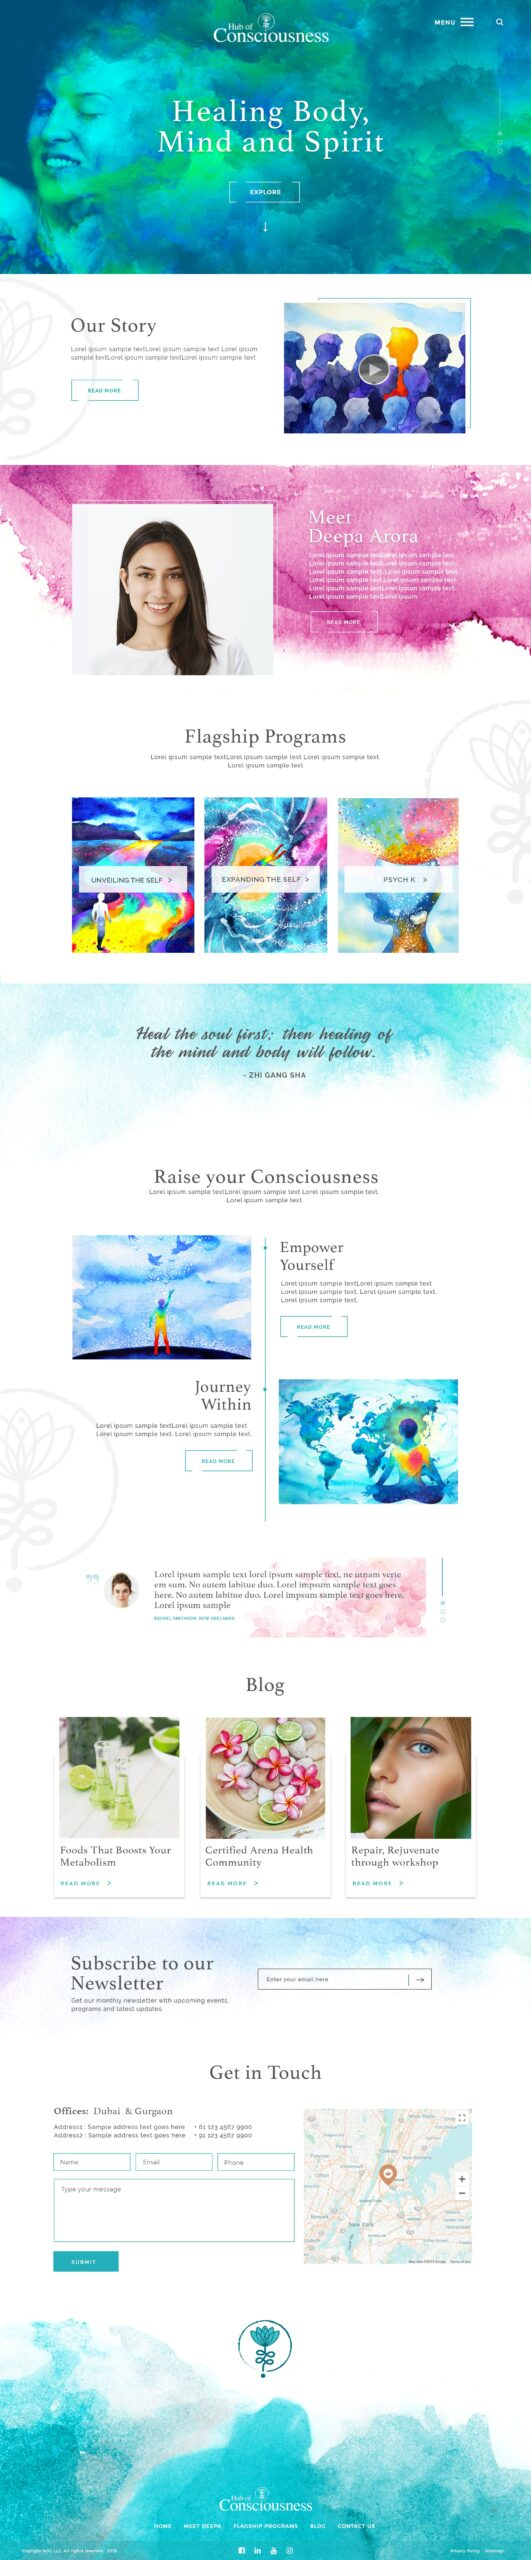 Holistic Web Design company